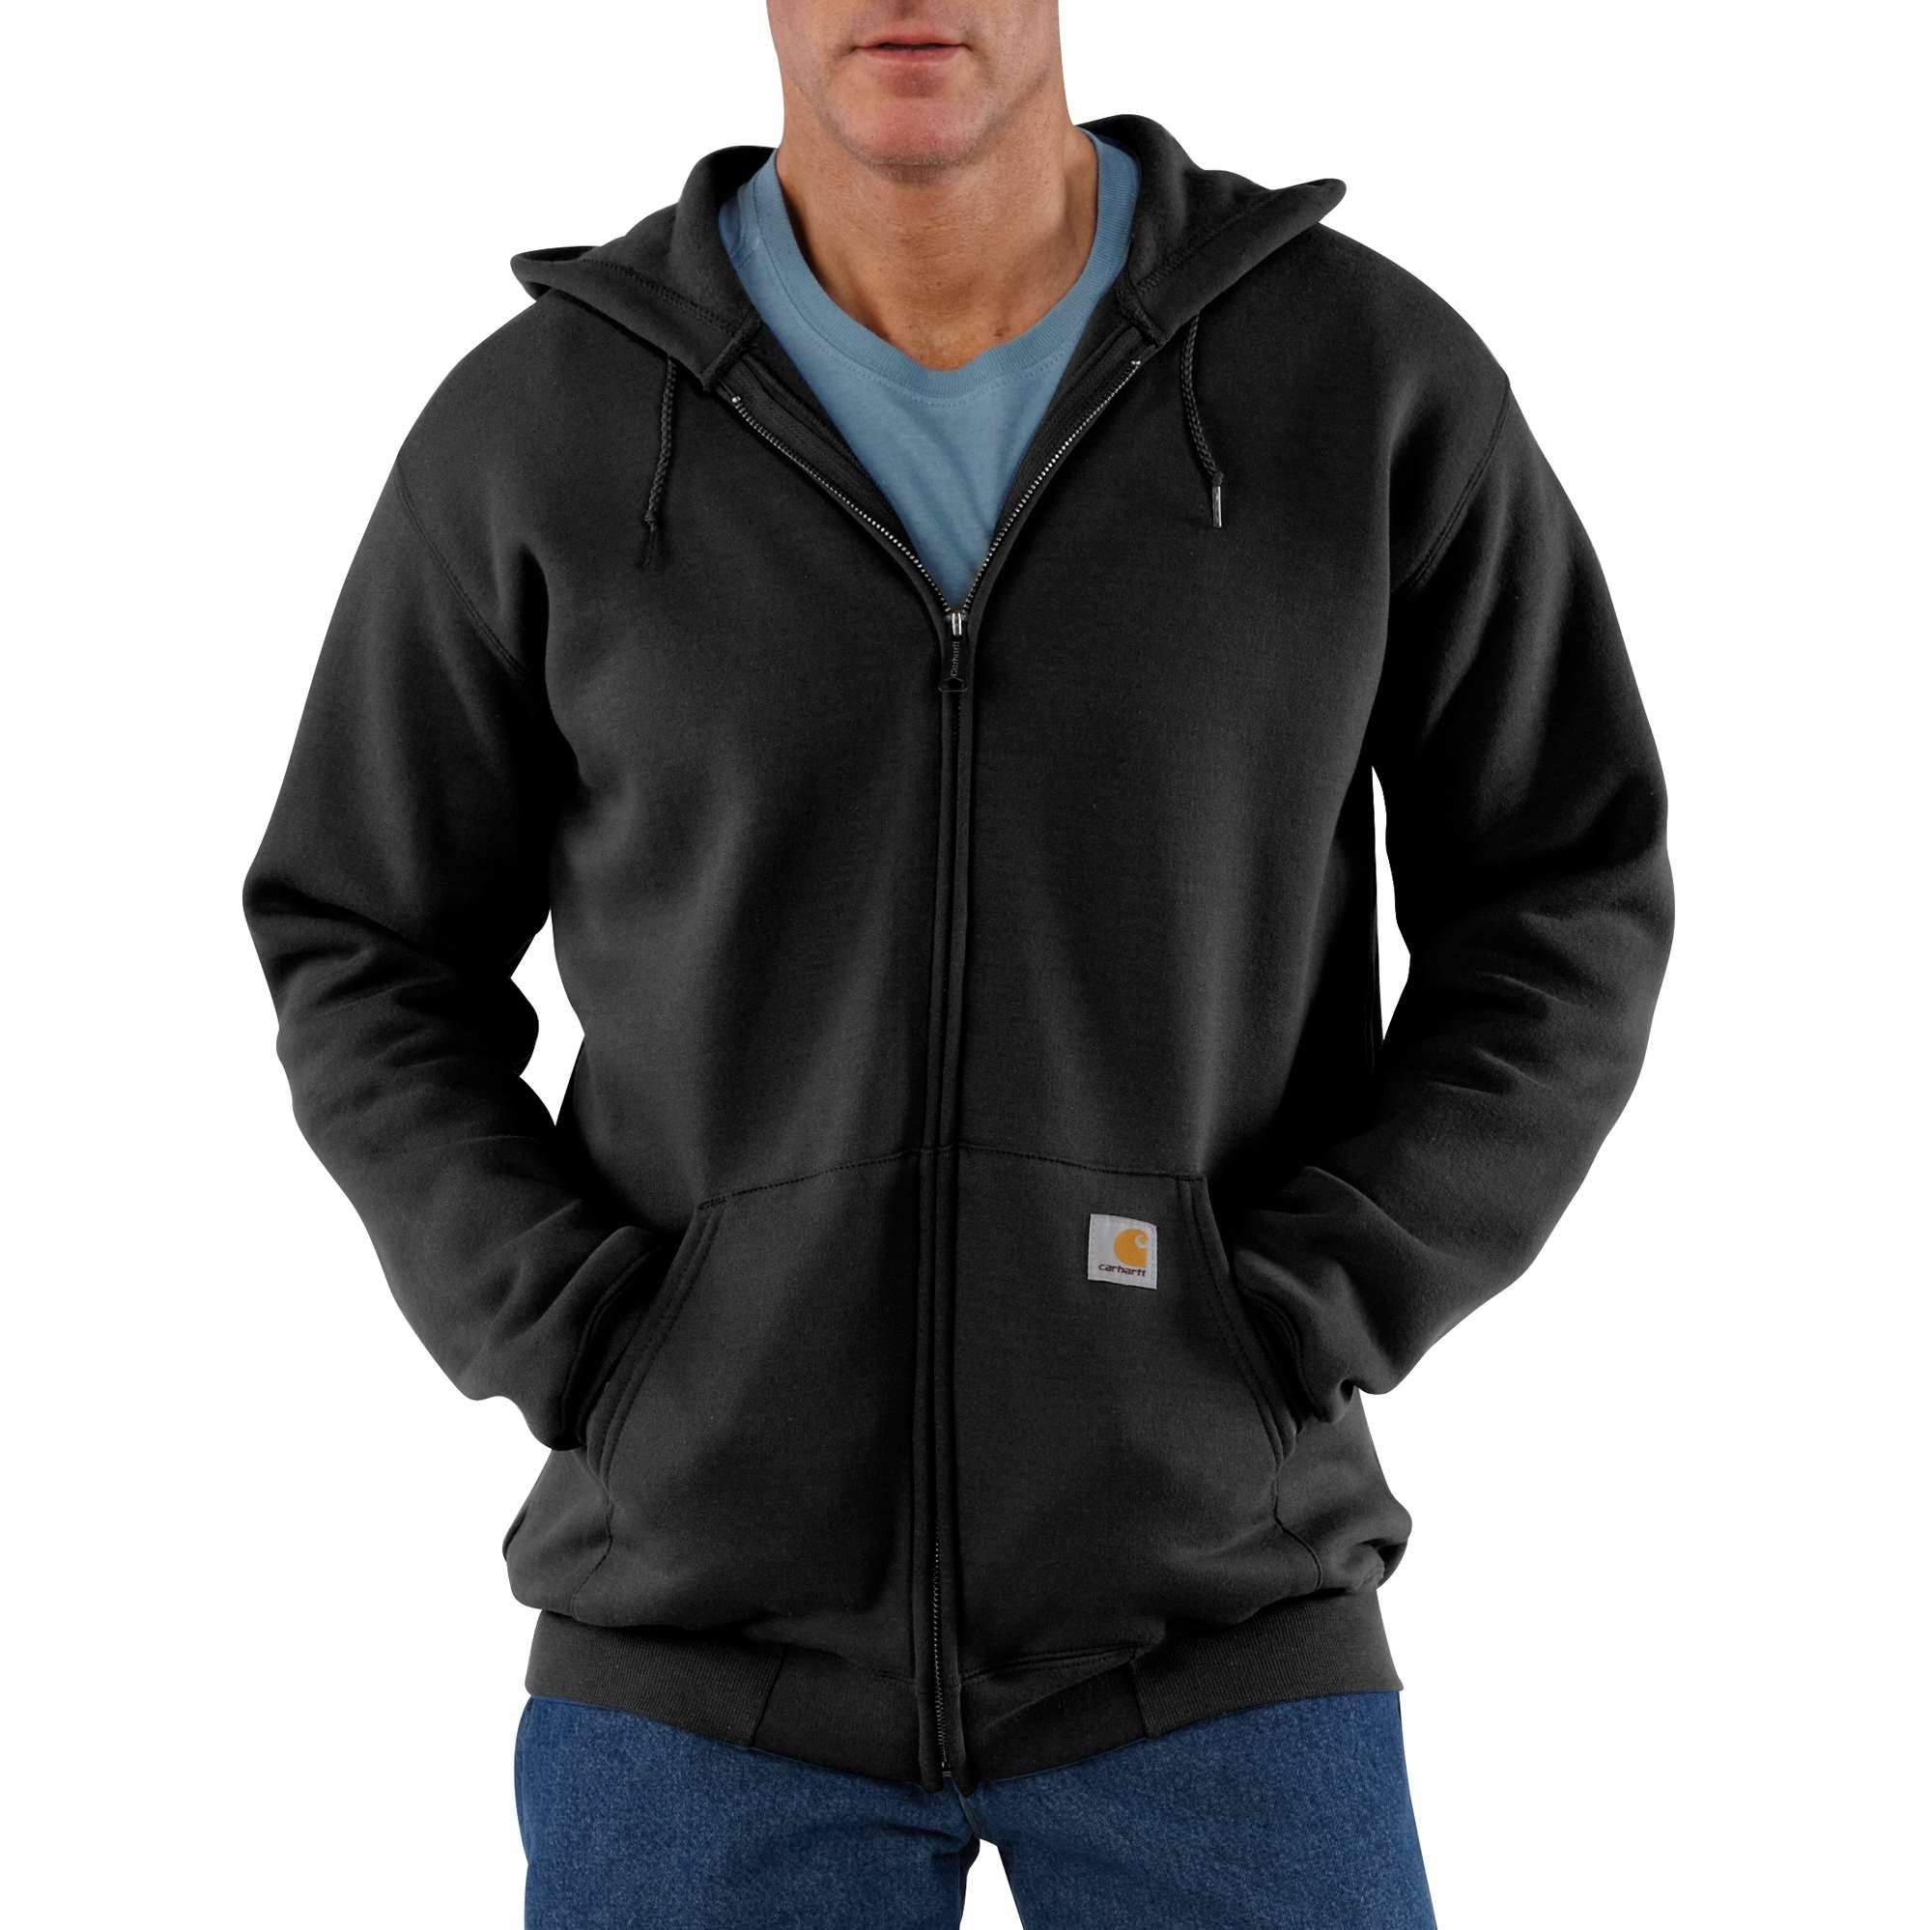 Carhartt Men's Midweight Sweatshirt Hooded Zip Front - Original Fit K122,black,large